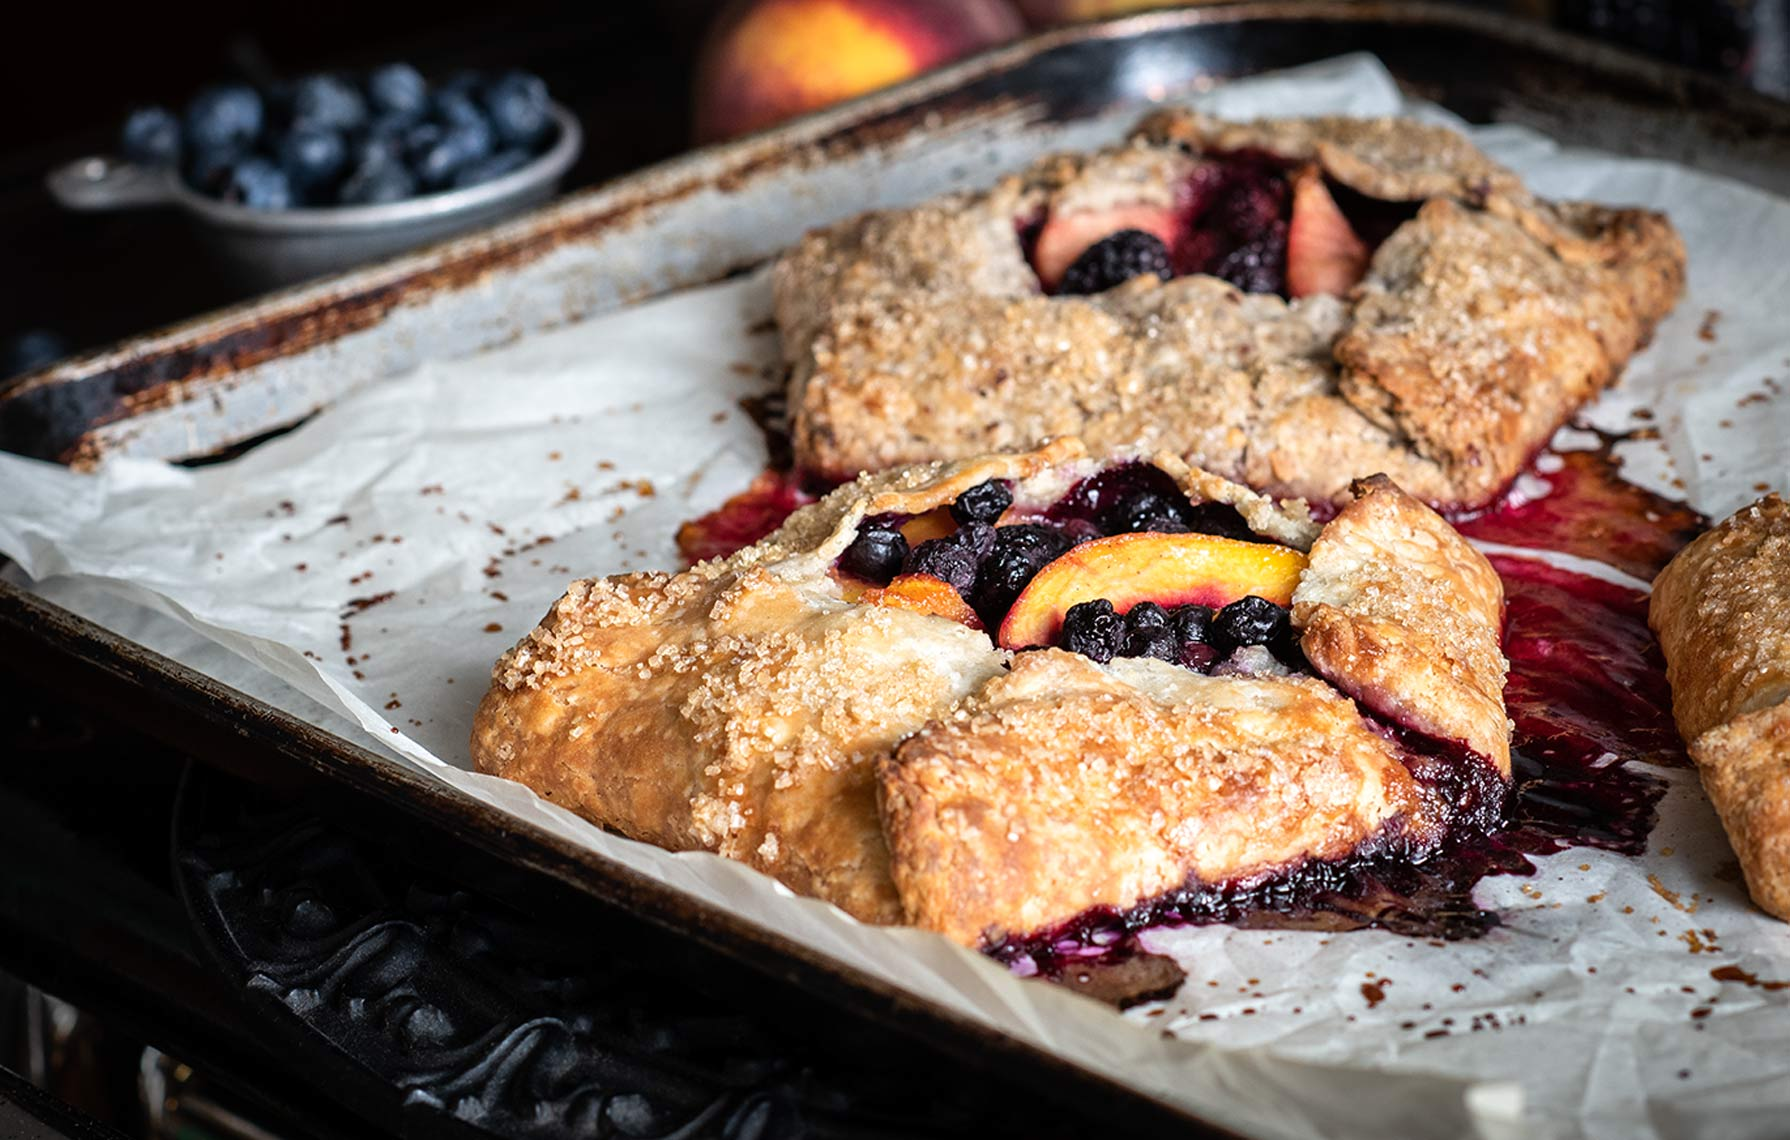 Food Photography Tart Baked Goods Peach Blueberry Apple Blackberry Tarts